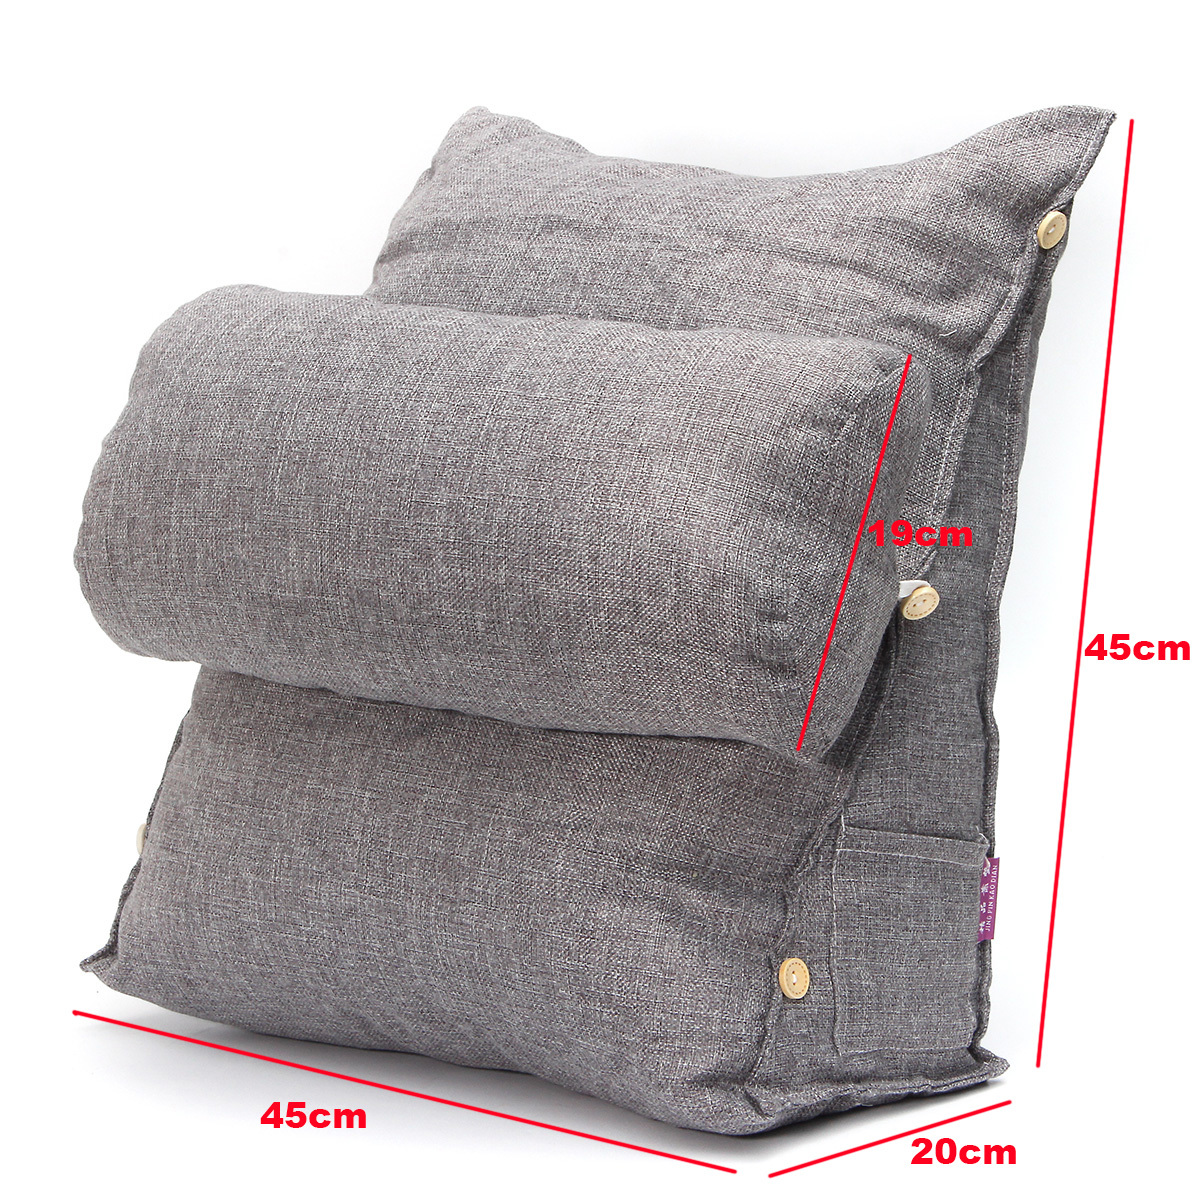 chair pillows for bed clearance covers sale adjustable fip pillow sofa office rest neck